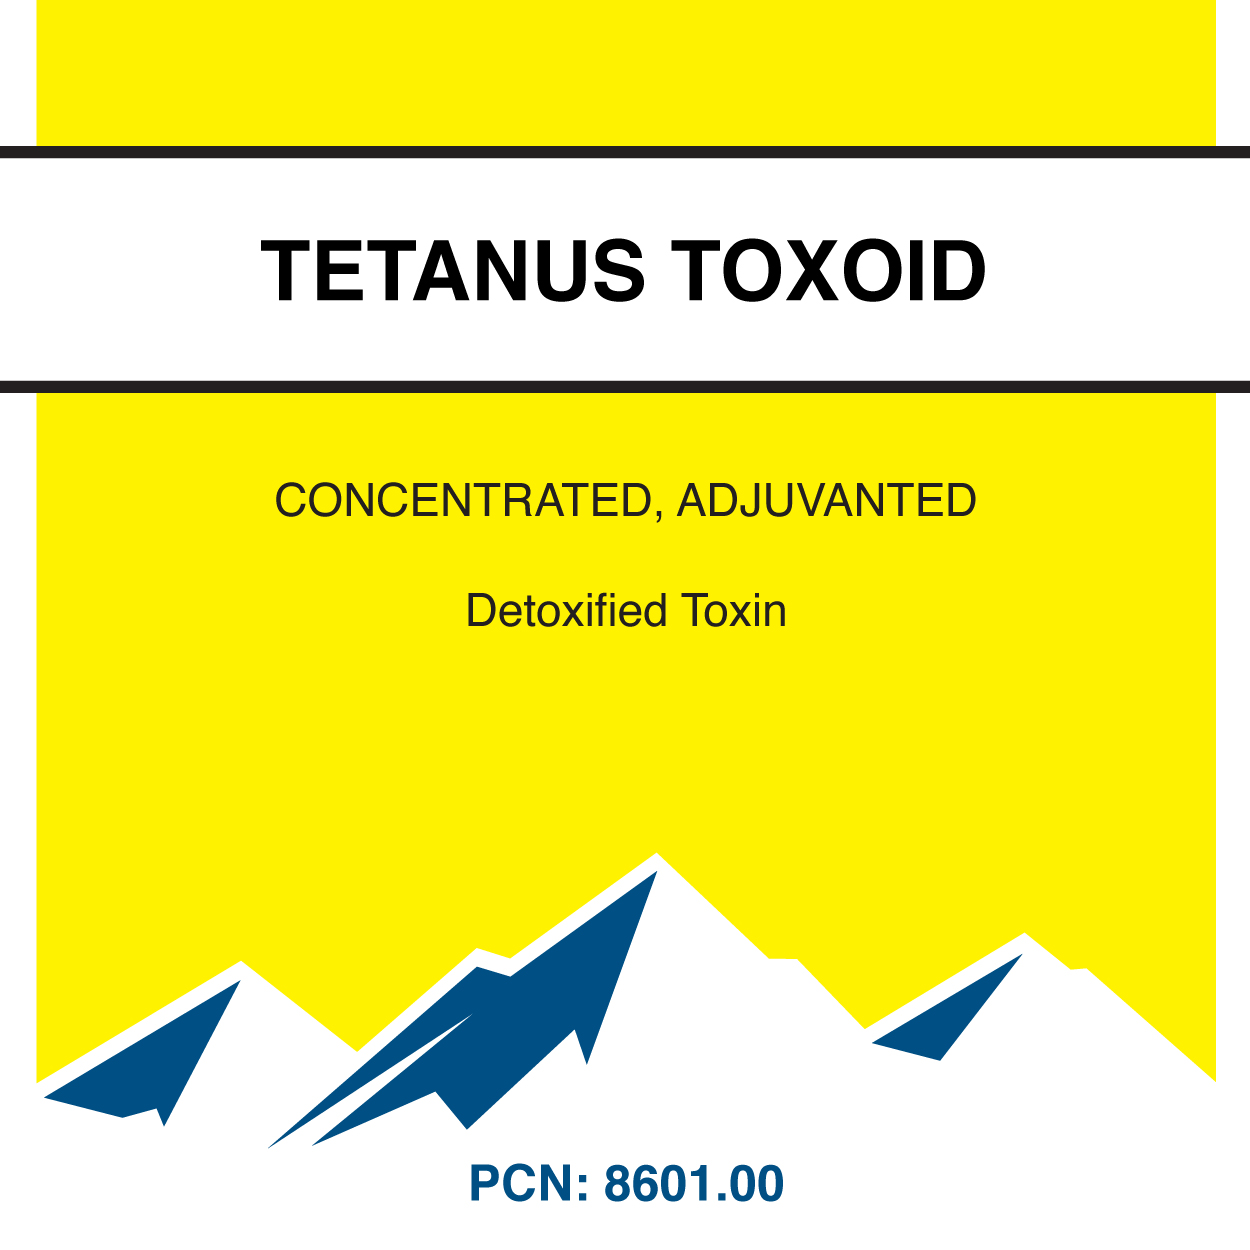 TETANUS TOXOID - CONCENTRATED